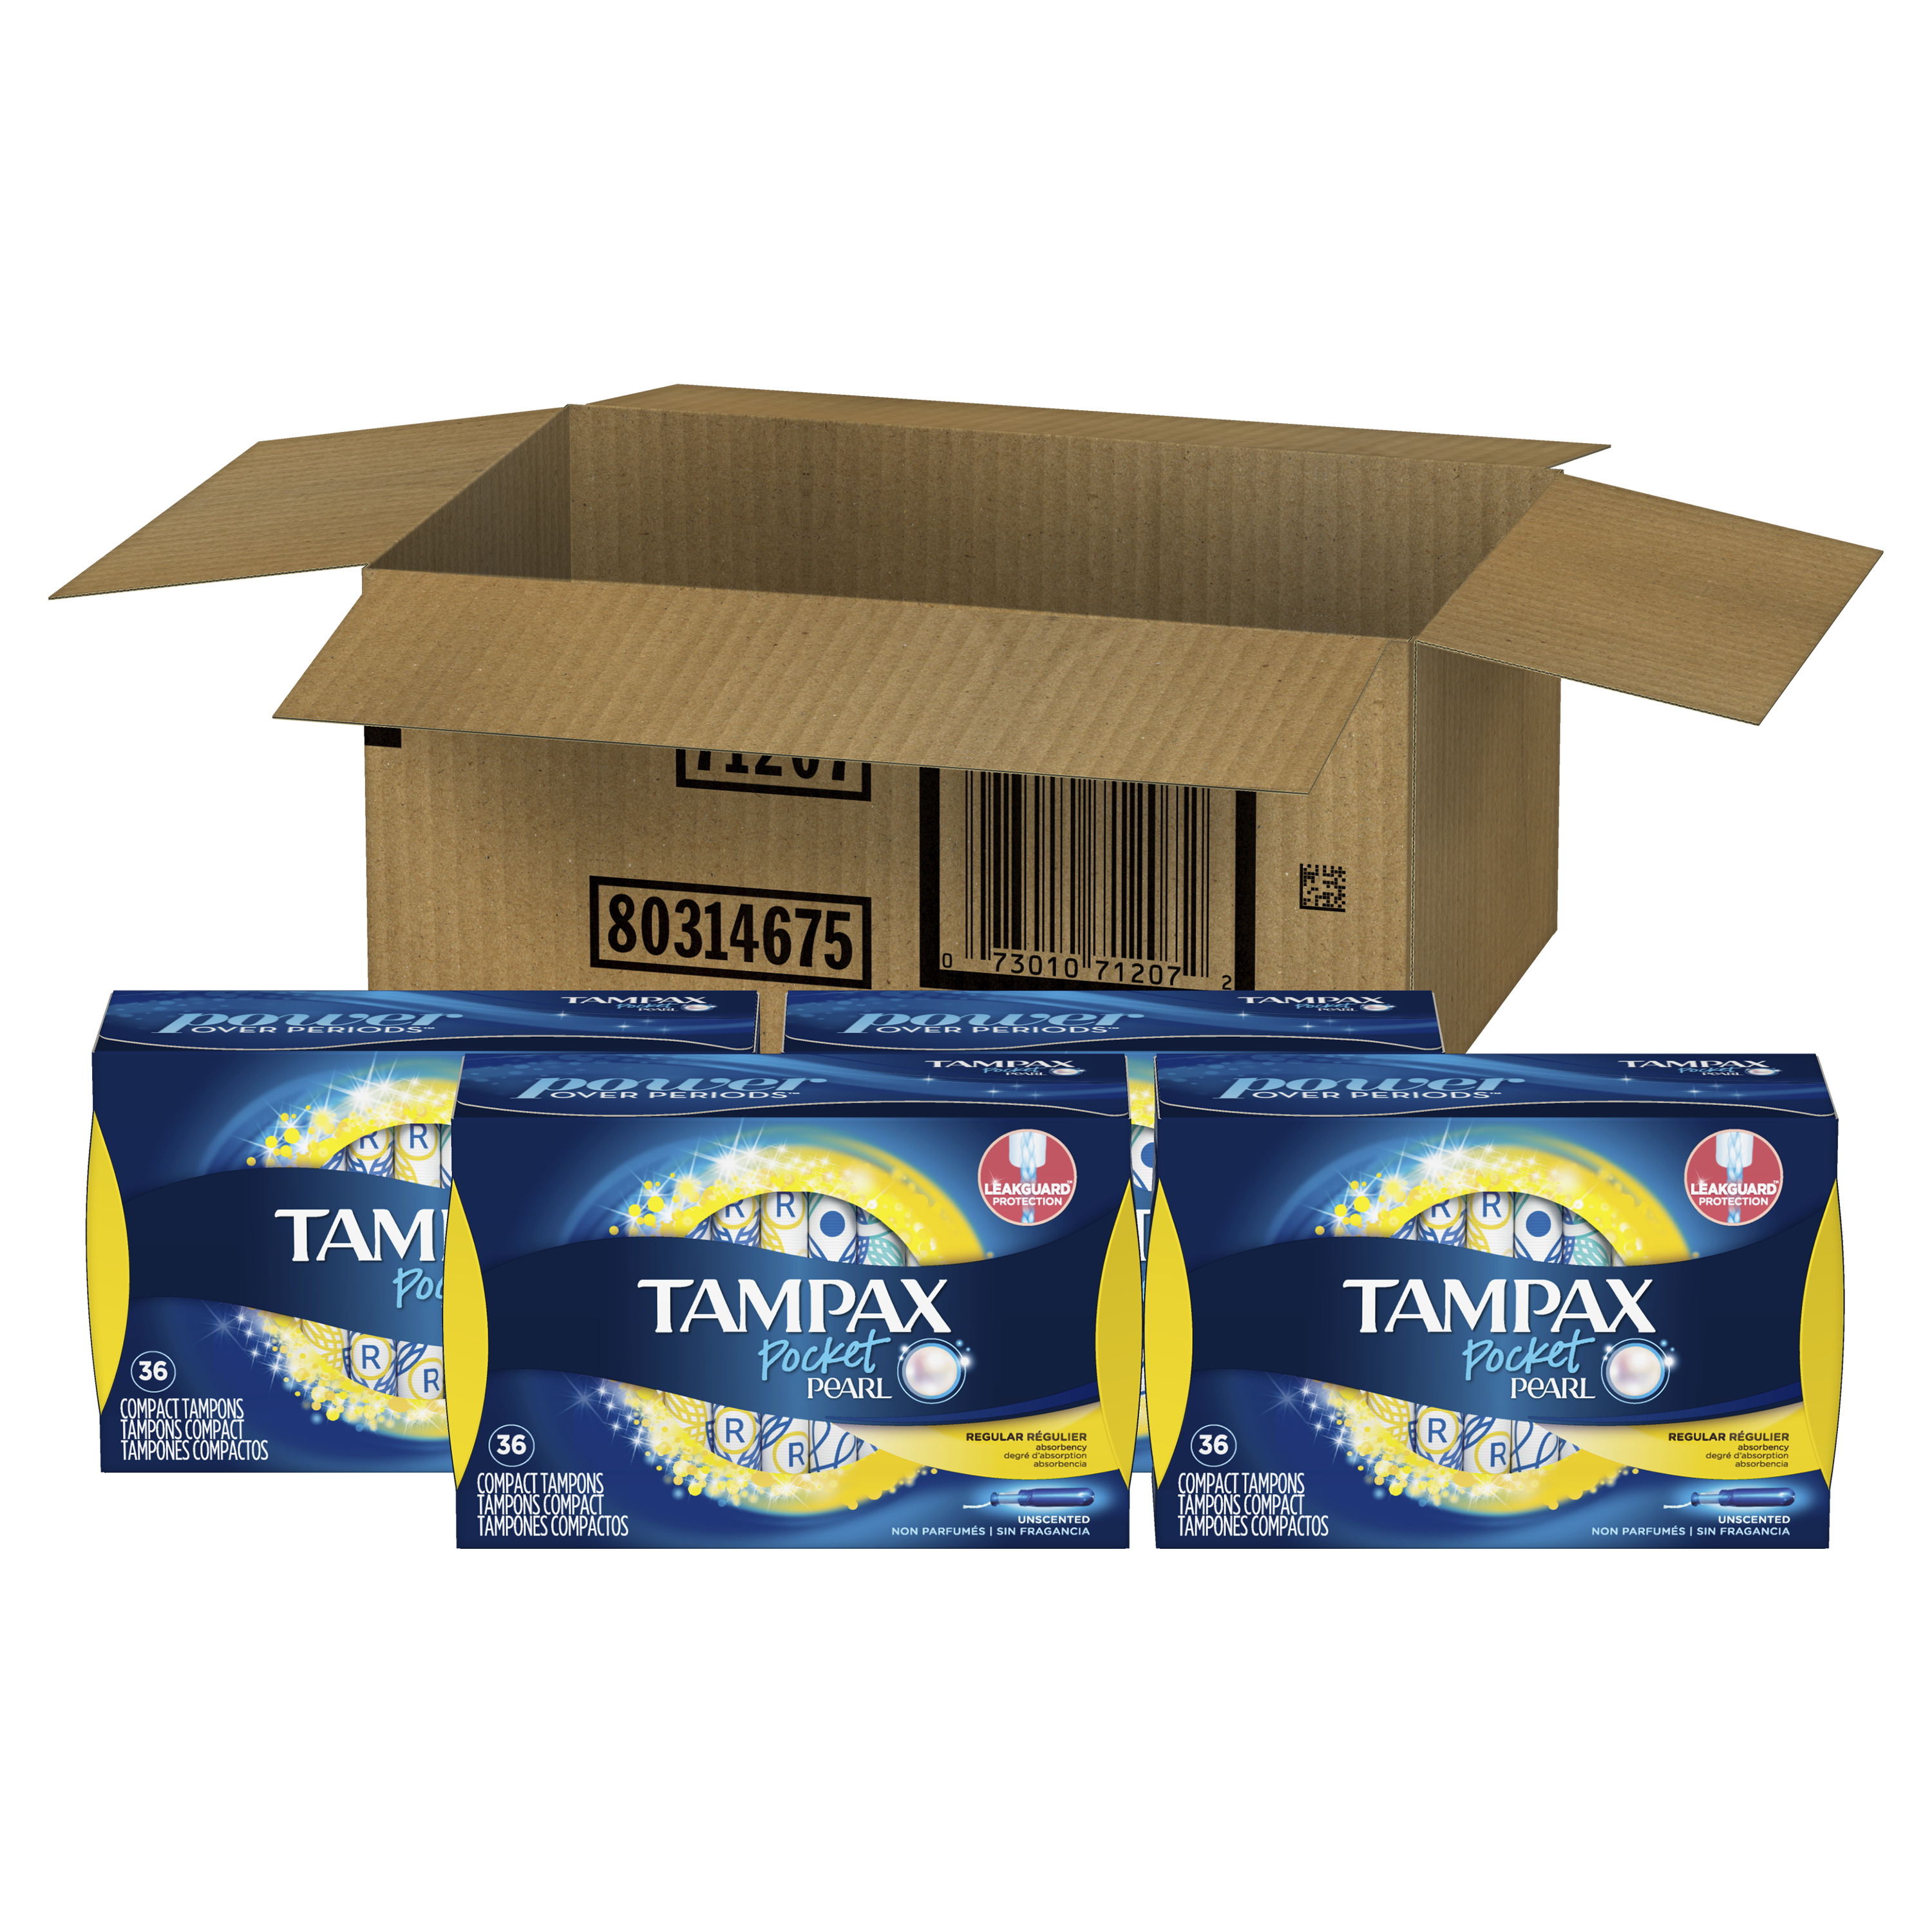 Tampax Pocket Pearl Plastic Tampons, Regular Absorbency, Unscented, 144 Count